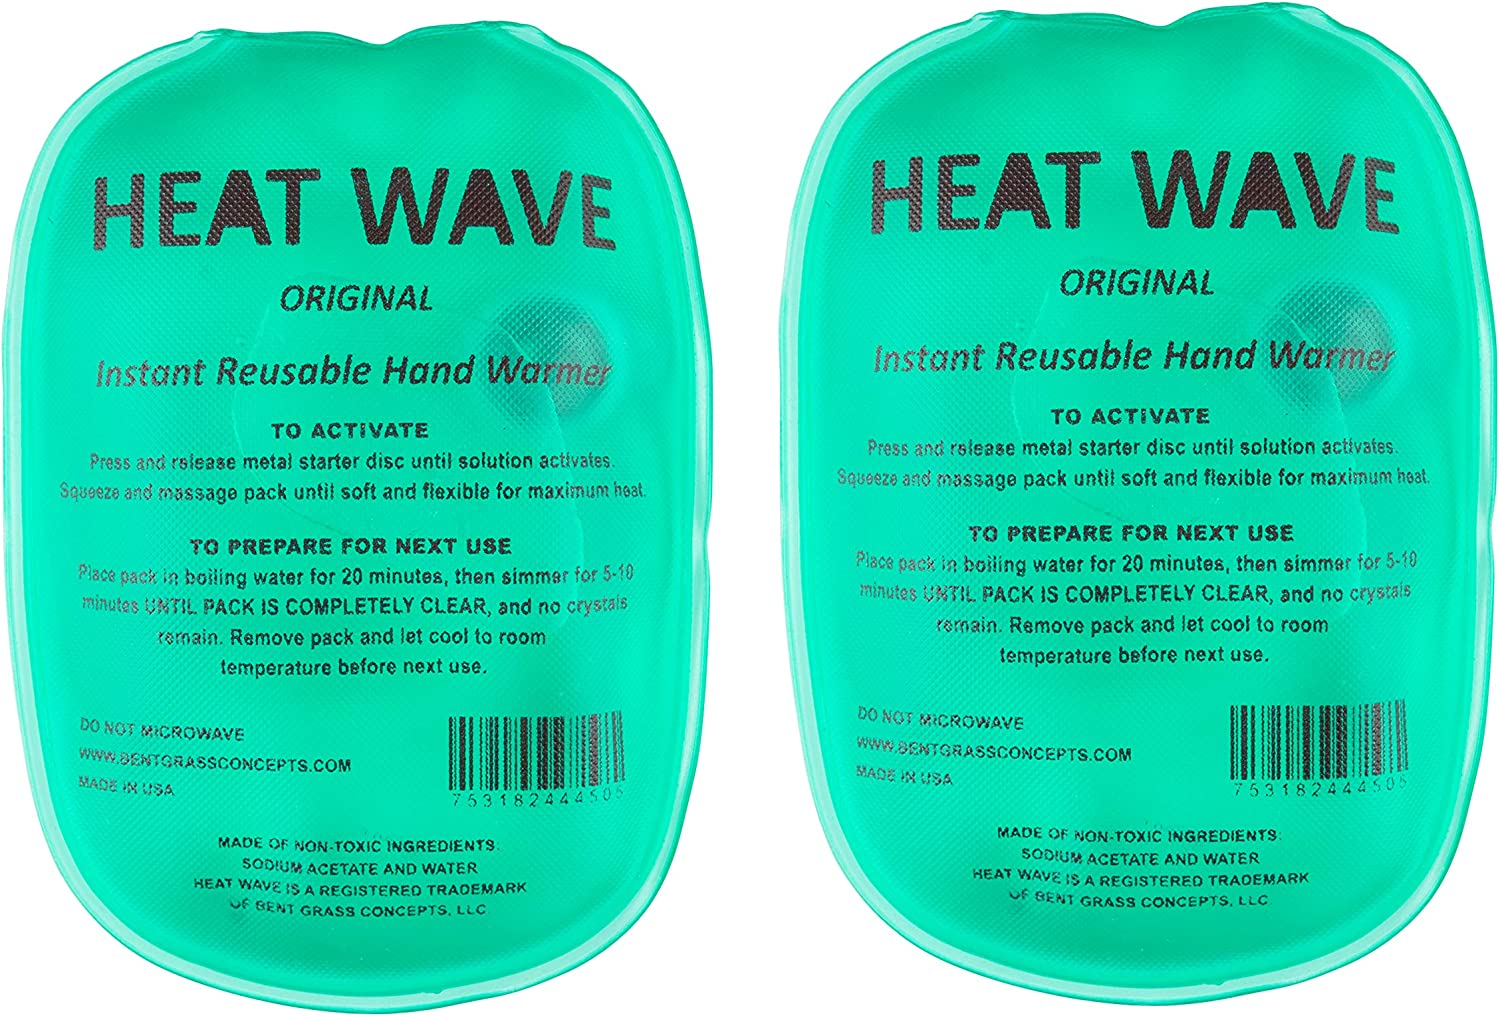 Made in USA: Heat Wave Instant Reusable Hand Warmers - Premium Medical Grade - Click to Heat